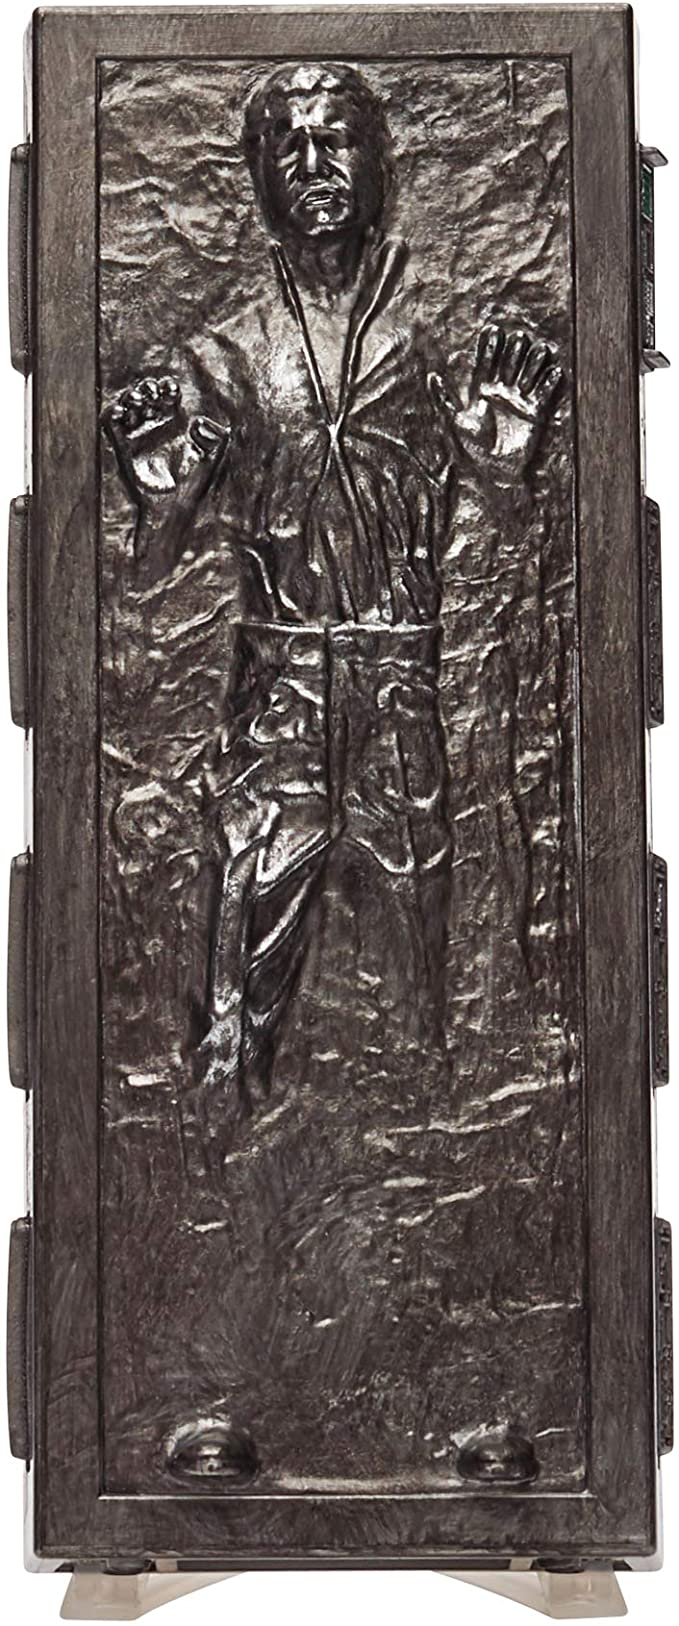 Star Wars The Black Series Han Solo in Carbonite Figure IN HAND SHIPS ASAP!